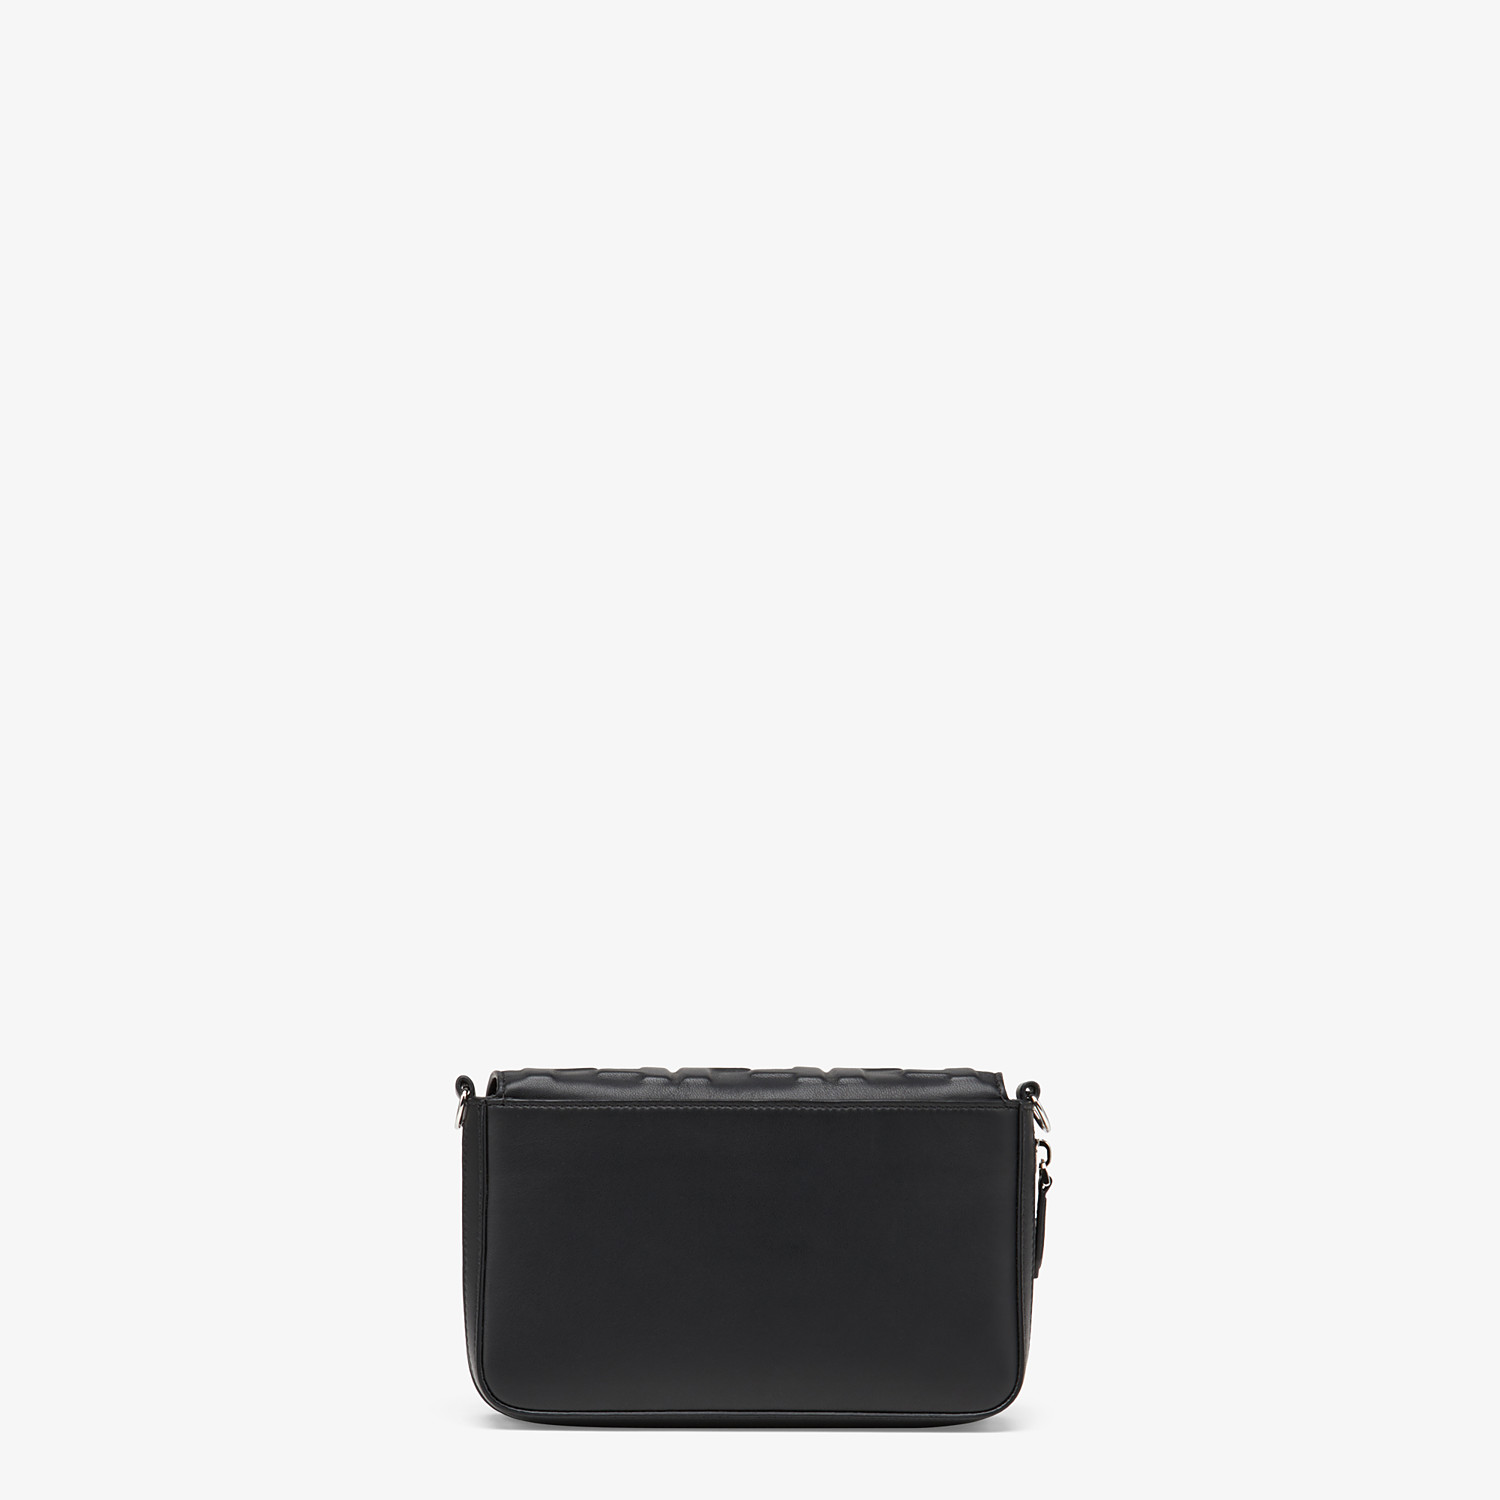 FENDI FLAP BAG - Black nappa leather bag - view 4 detail